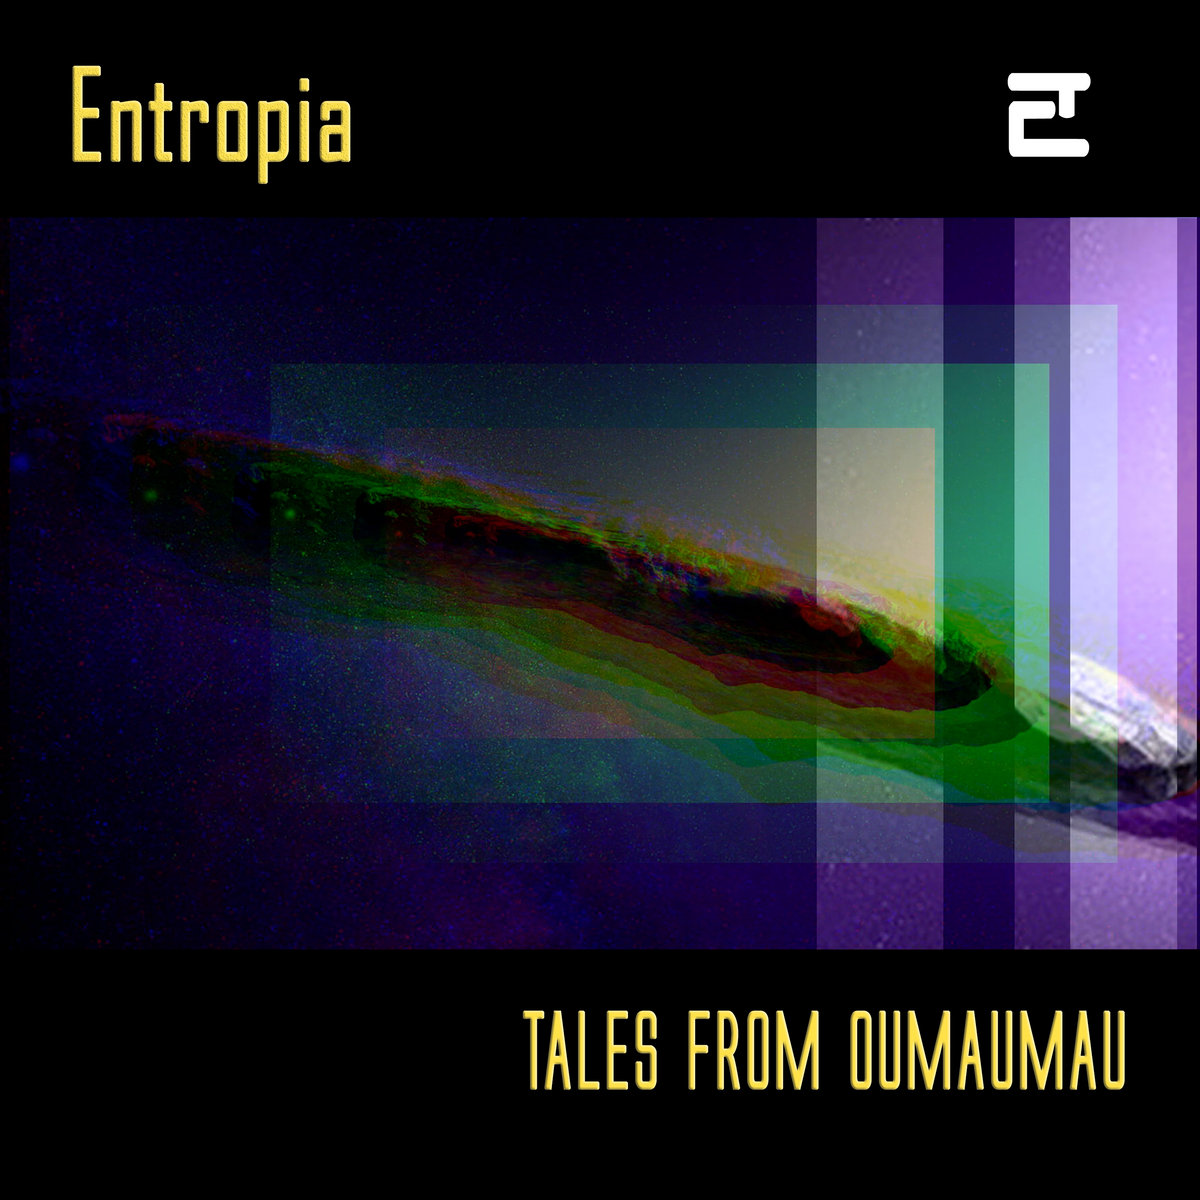 Entropia new album: Tales from Oumuamua